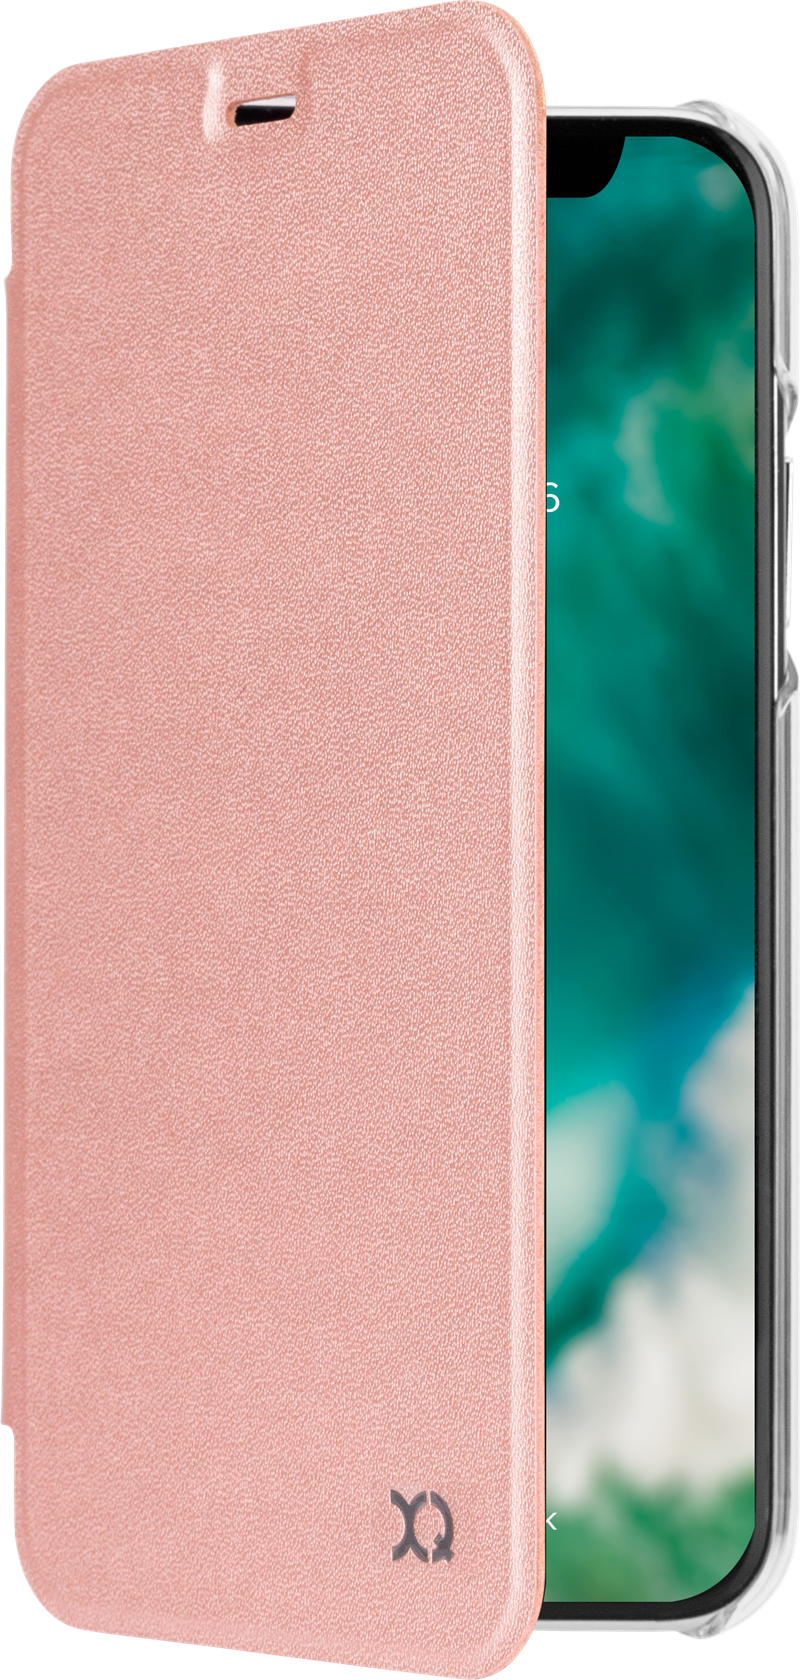 Xqisit Flap Cover Adour iPhone X XS Rose Gold  Plånboksfodral med ... 0b3f2d761bfe7